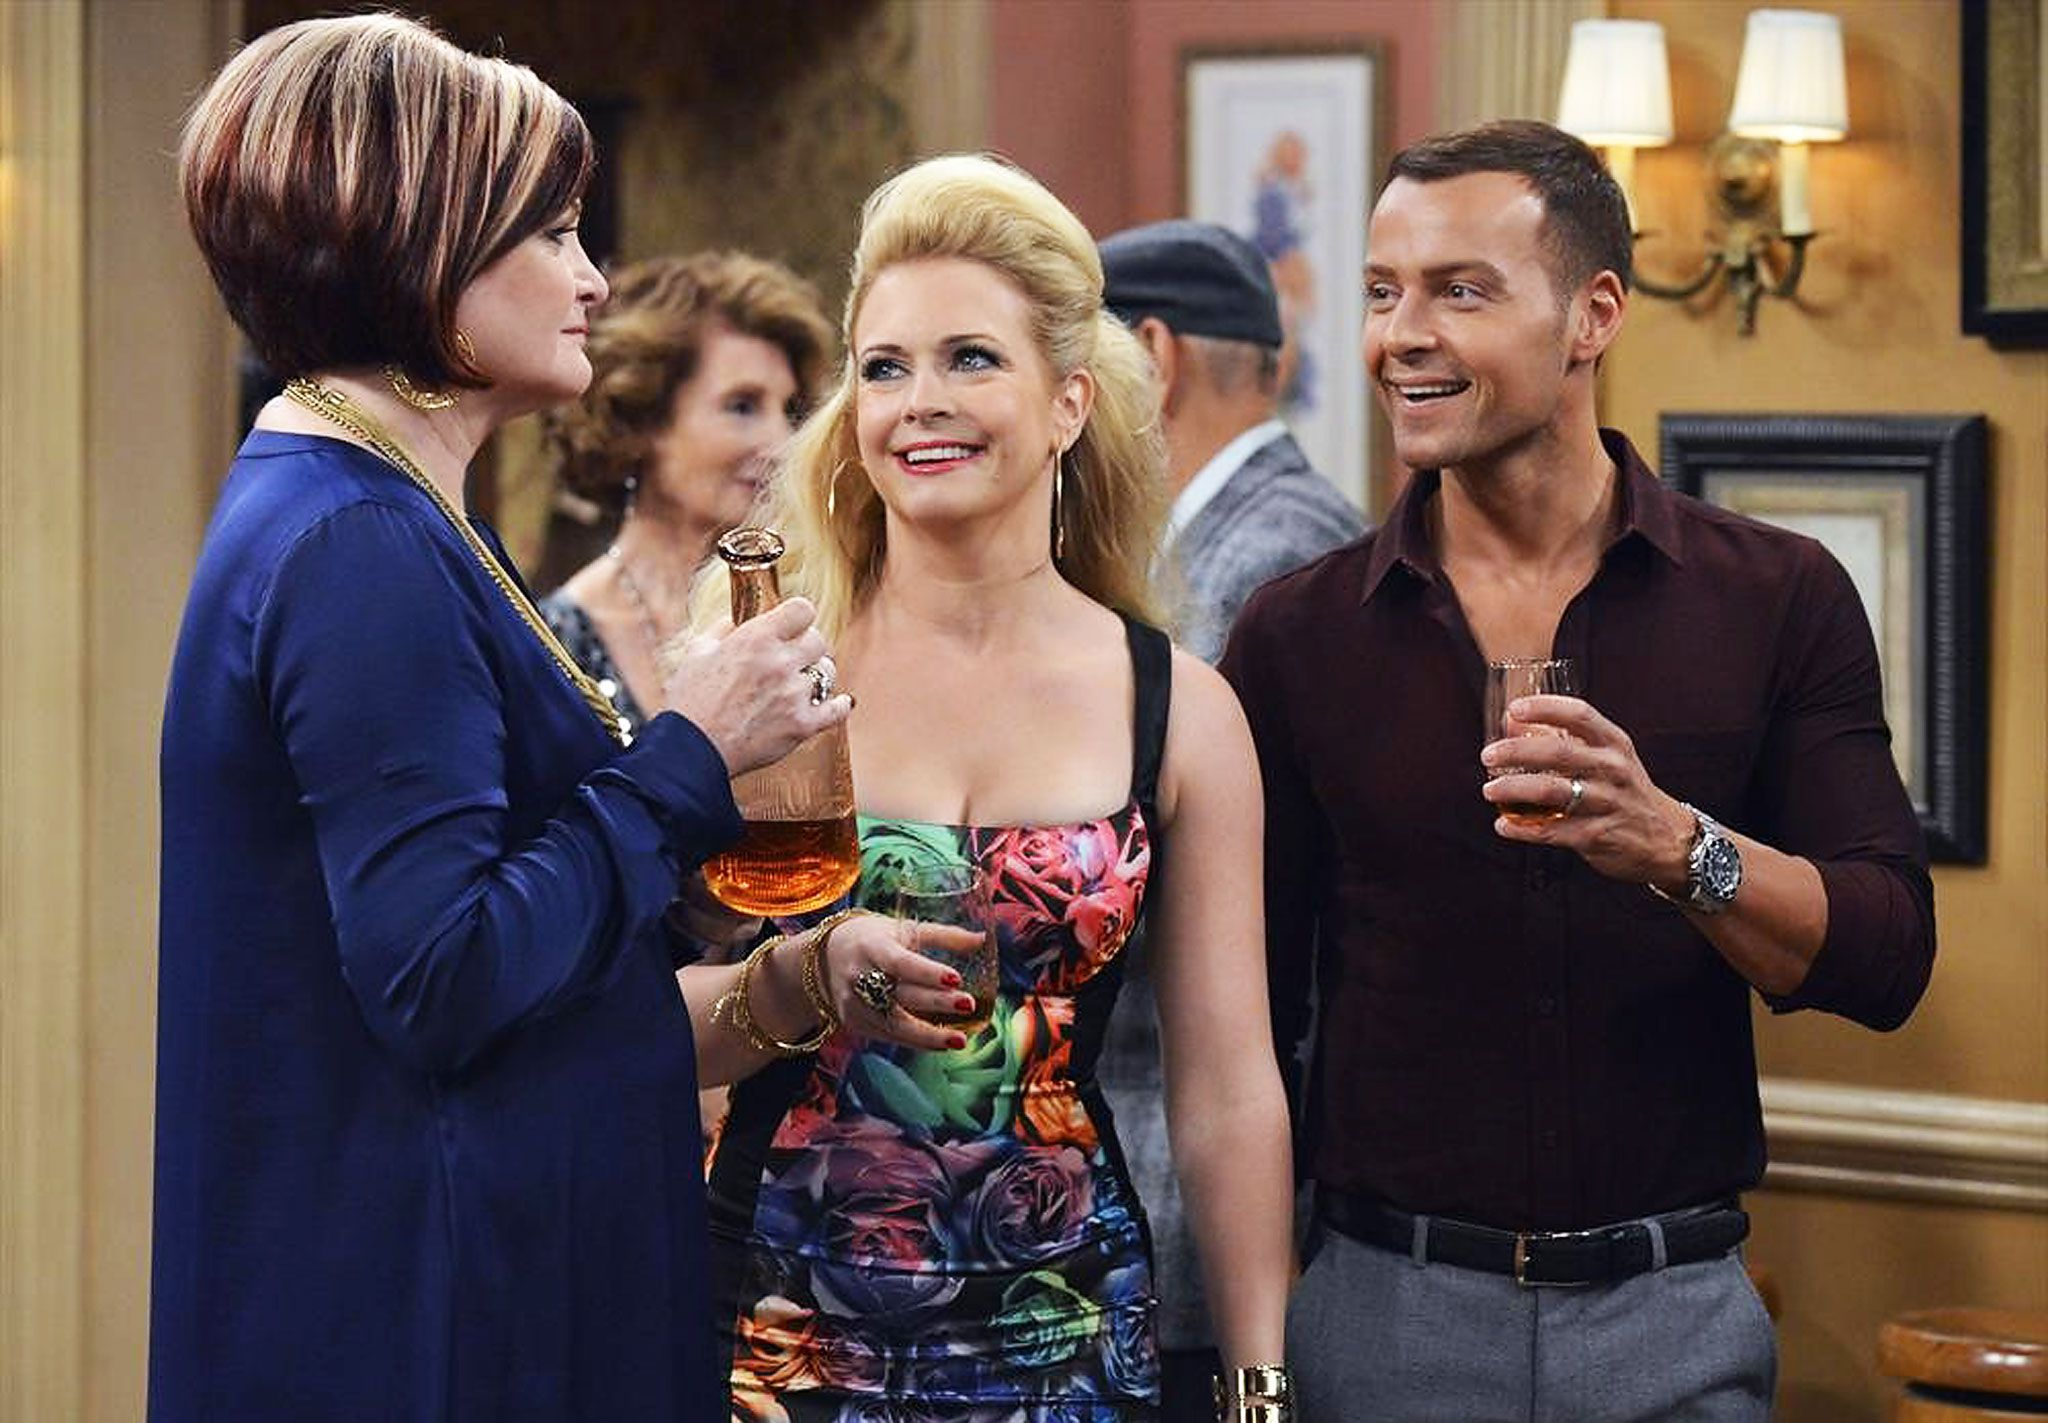 pin by eliany pino on melissa & joey | melissa & joey